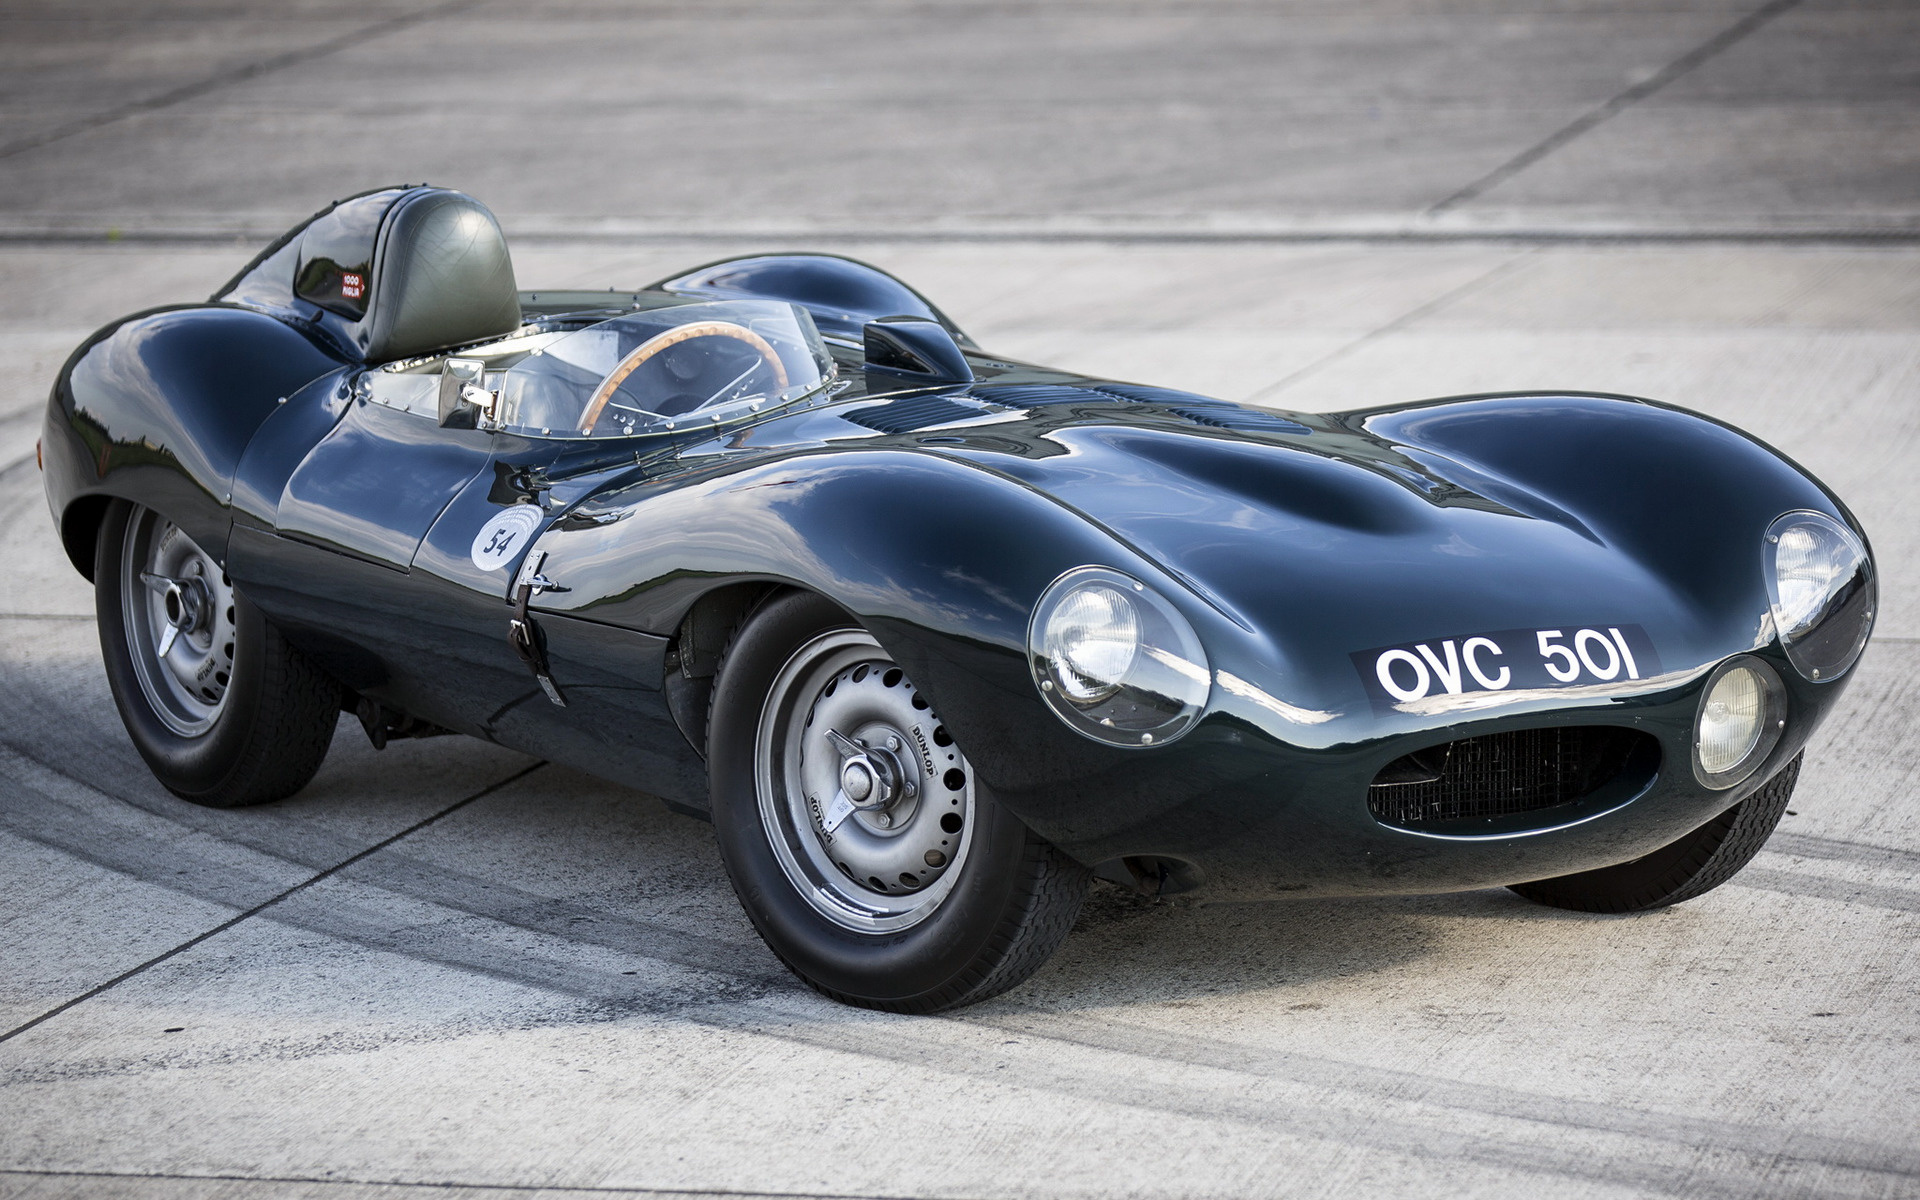 Genesis Car Wallpaper Jaguar D Type Prototype 1954 Wallpapers And Hd Images